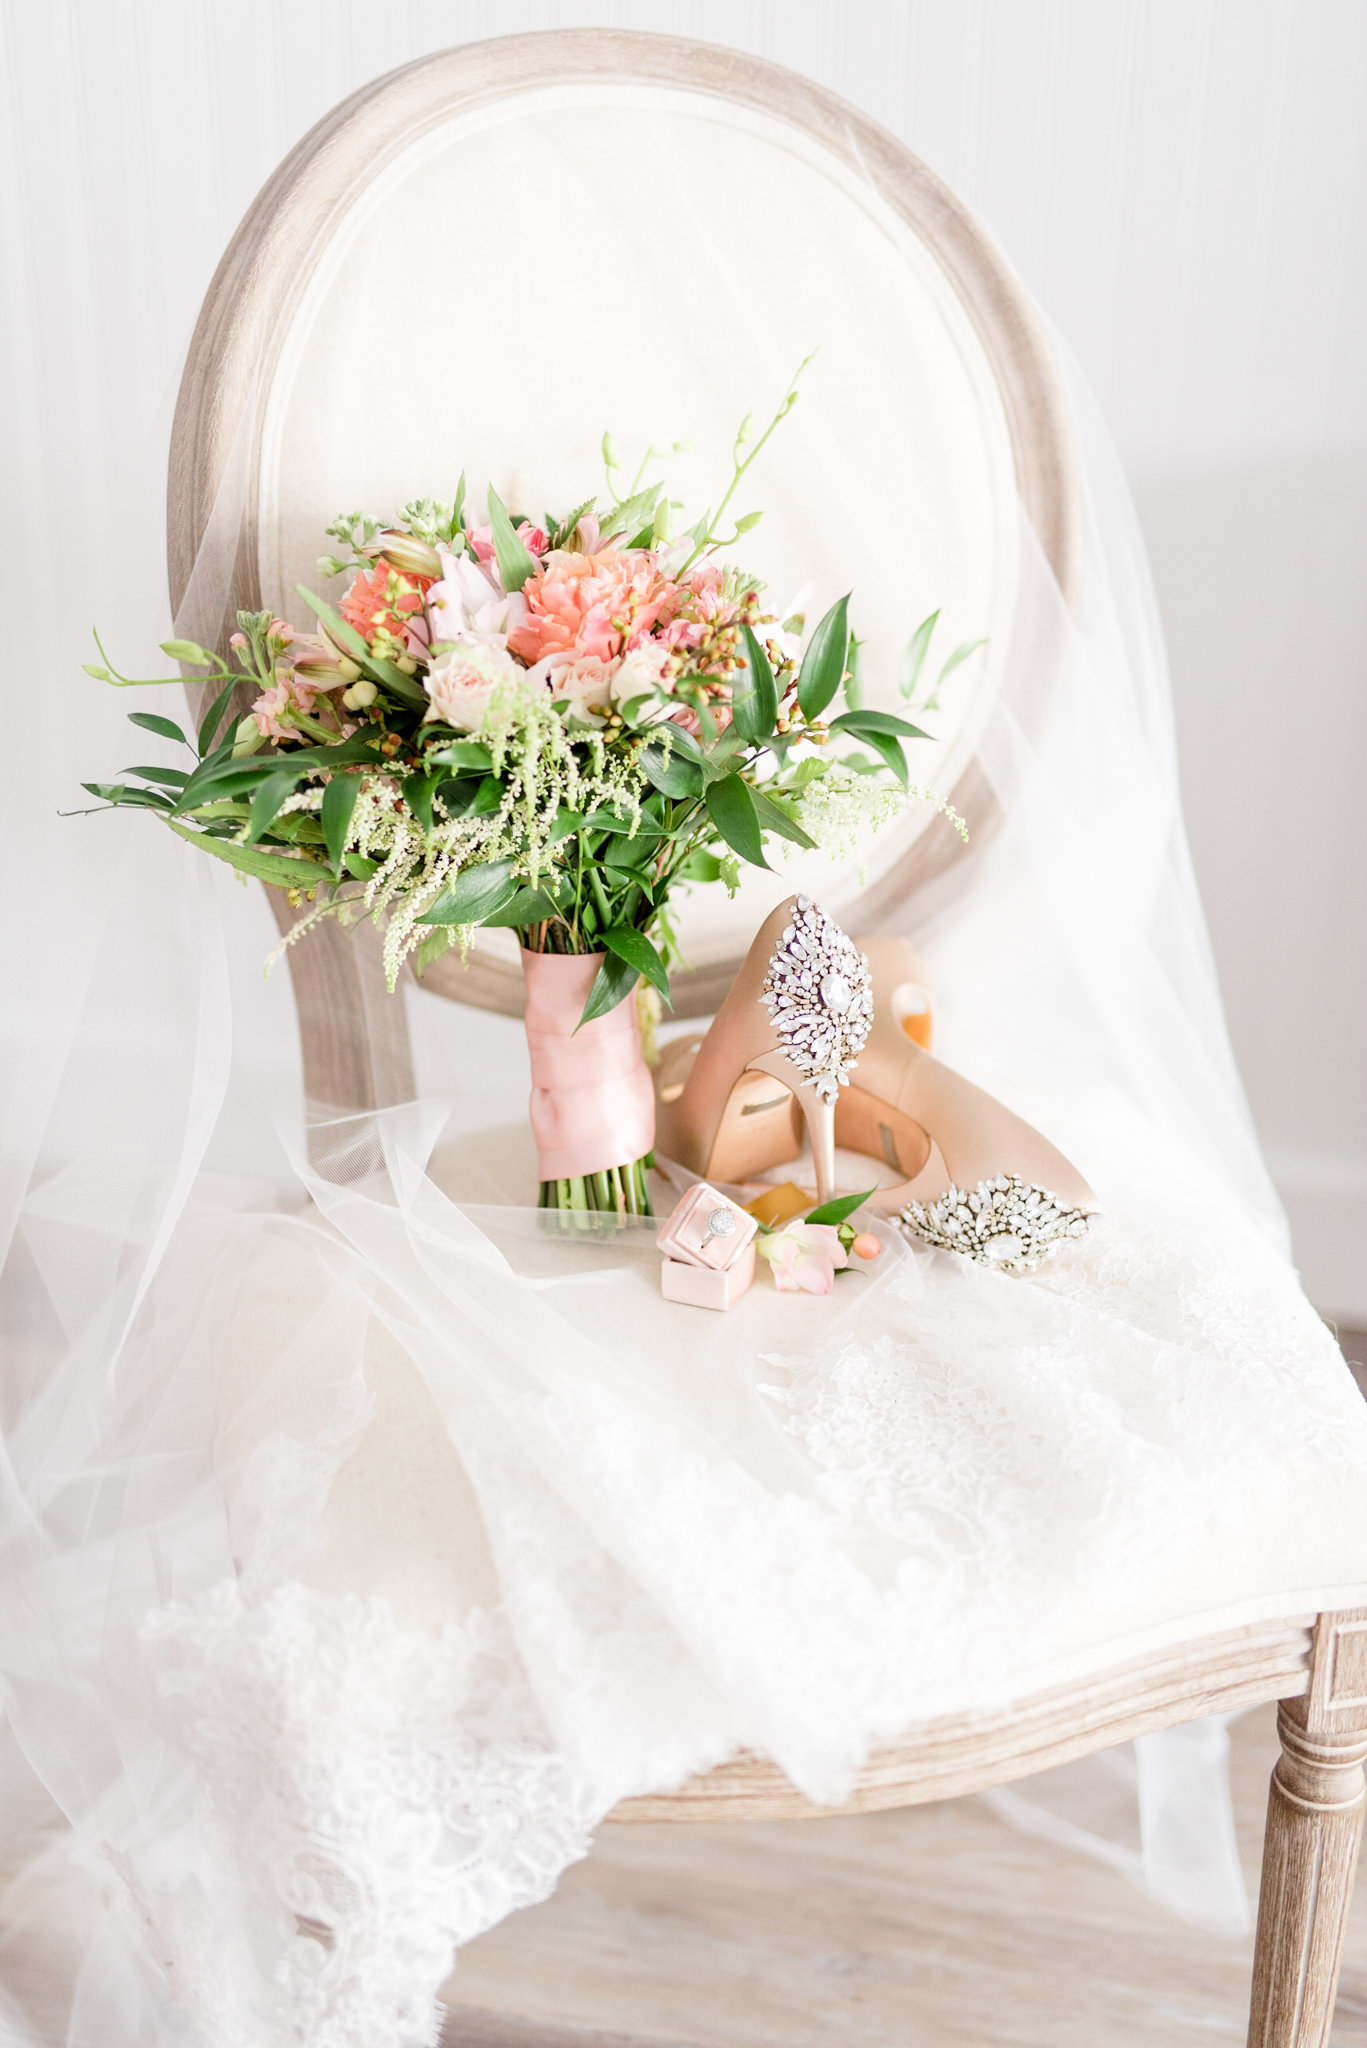 Wedding bouquet and shoes sit on veil and chair.